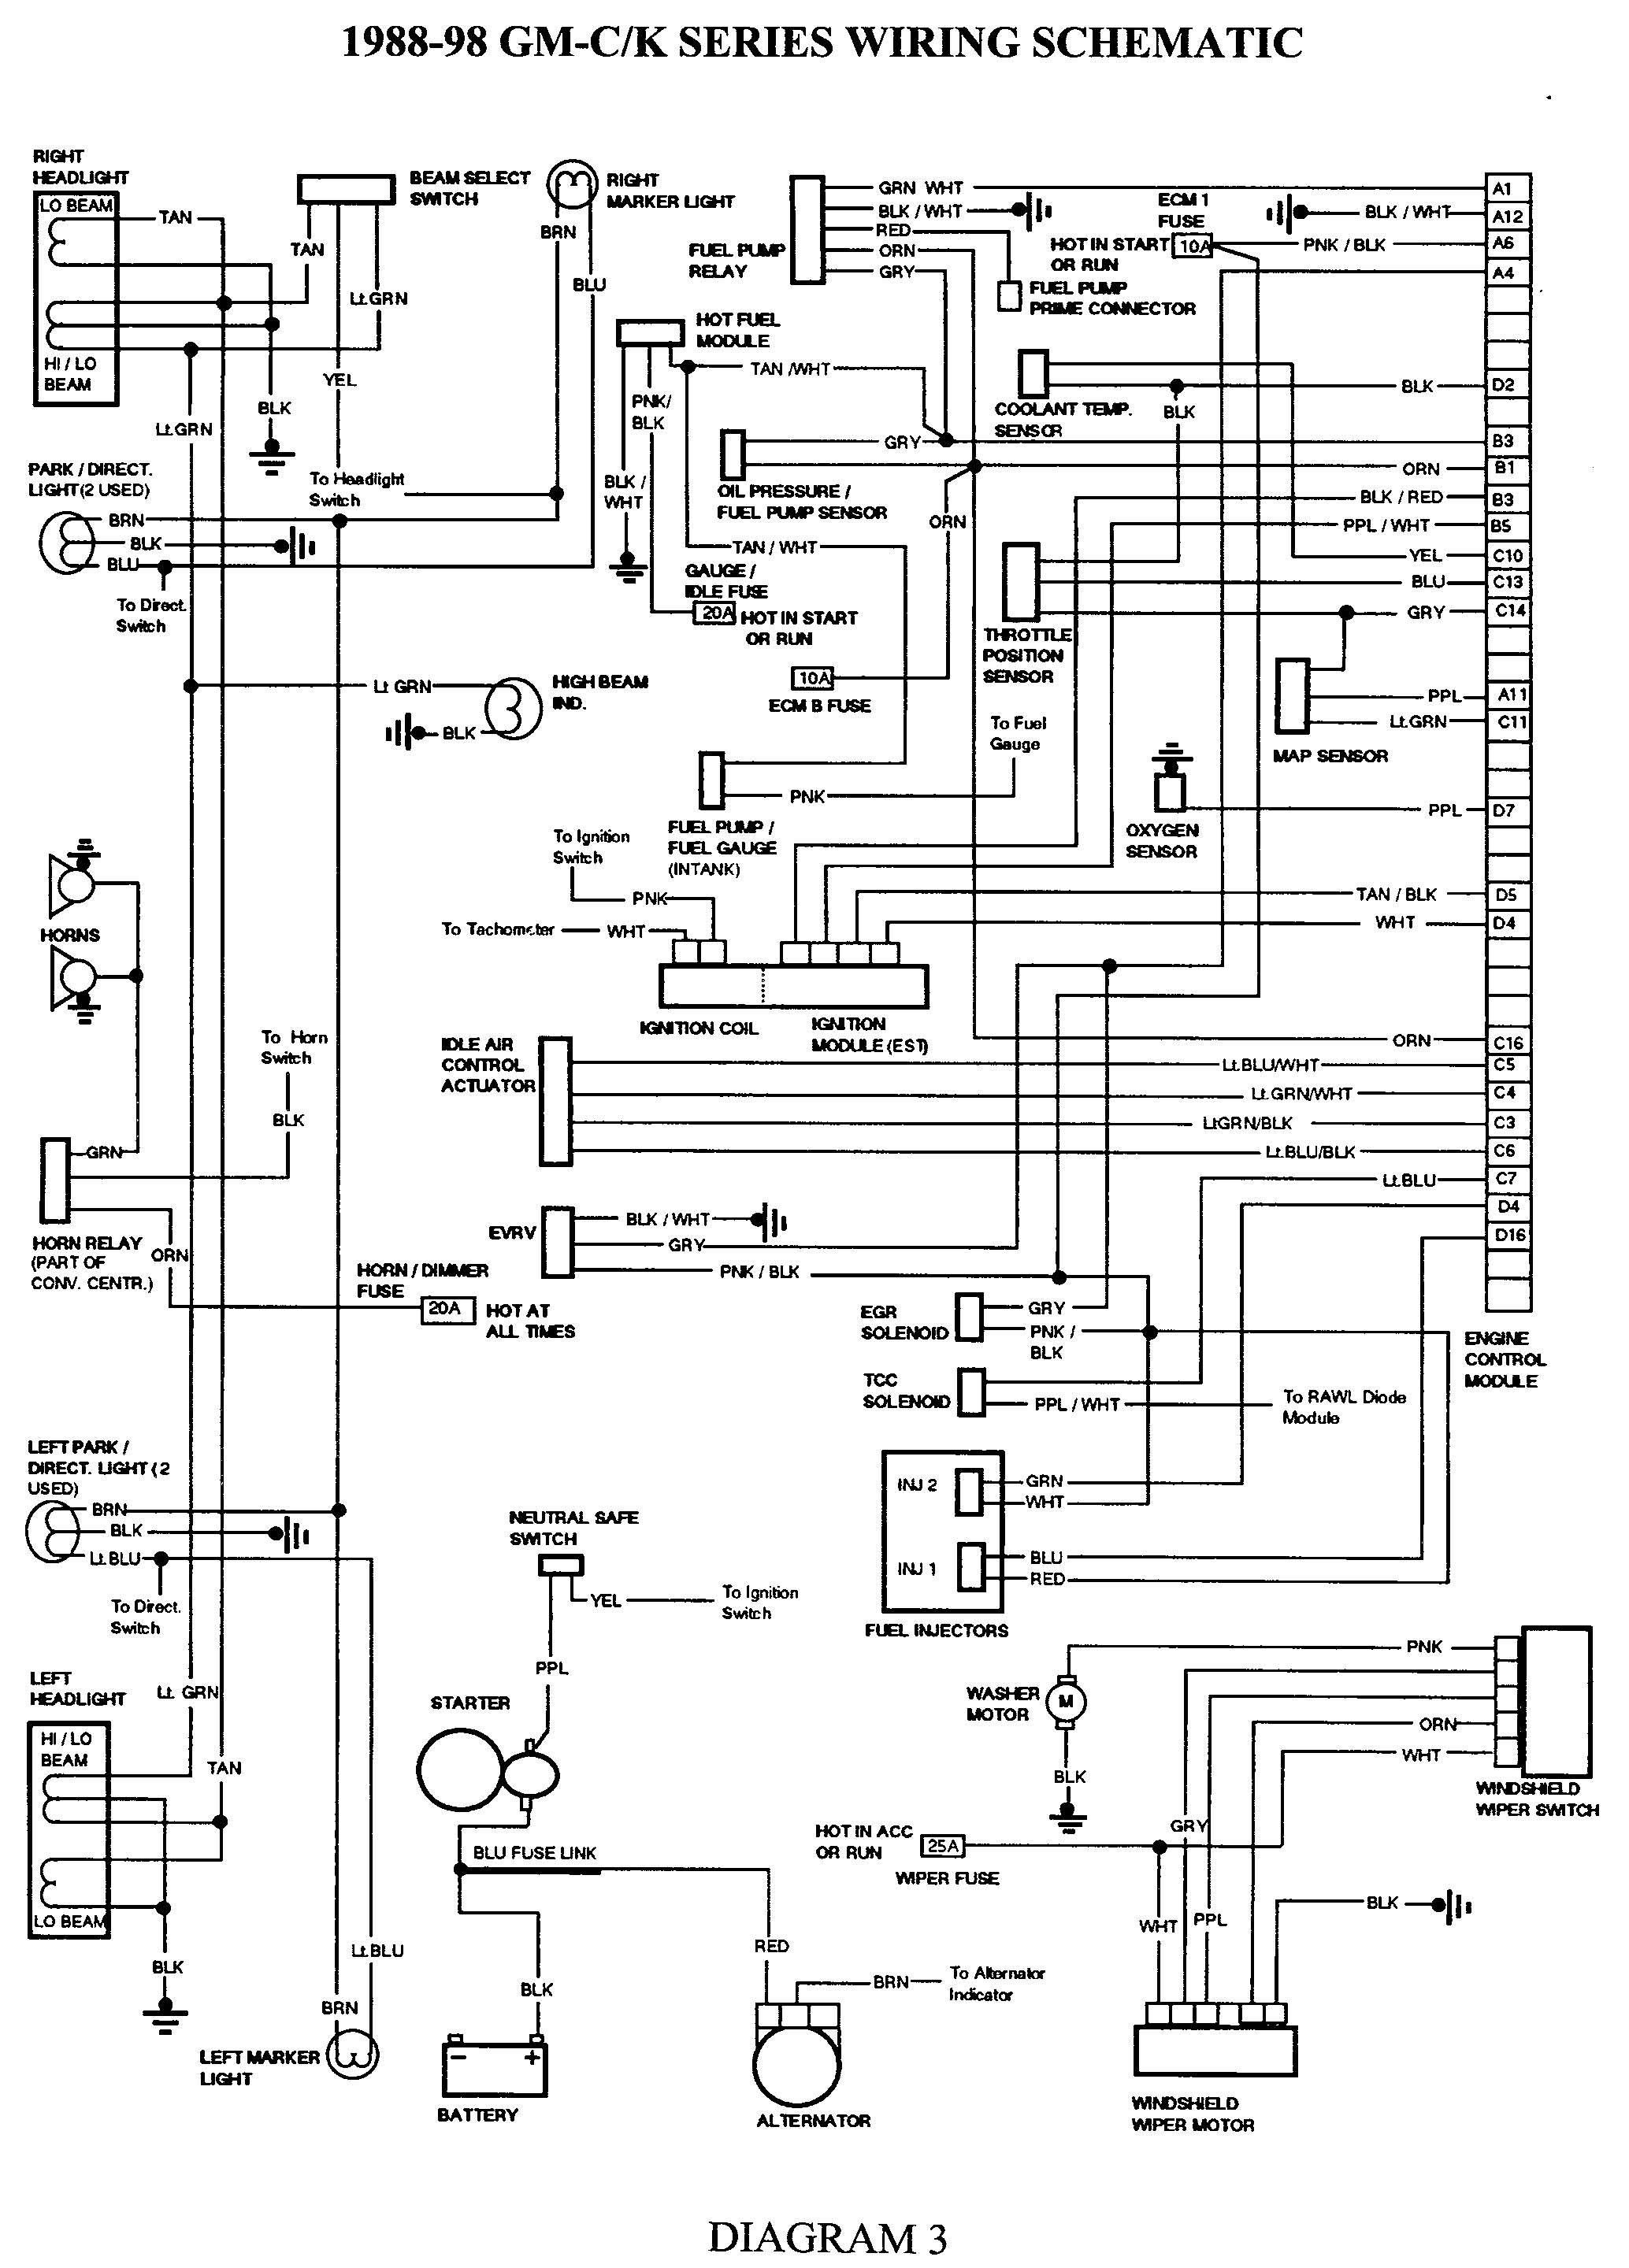 unique wiring schematic legend diagram wiringdiagram diagramming diagramm visuals visualisation [ 2068 x 2880 Pixel ]